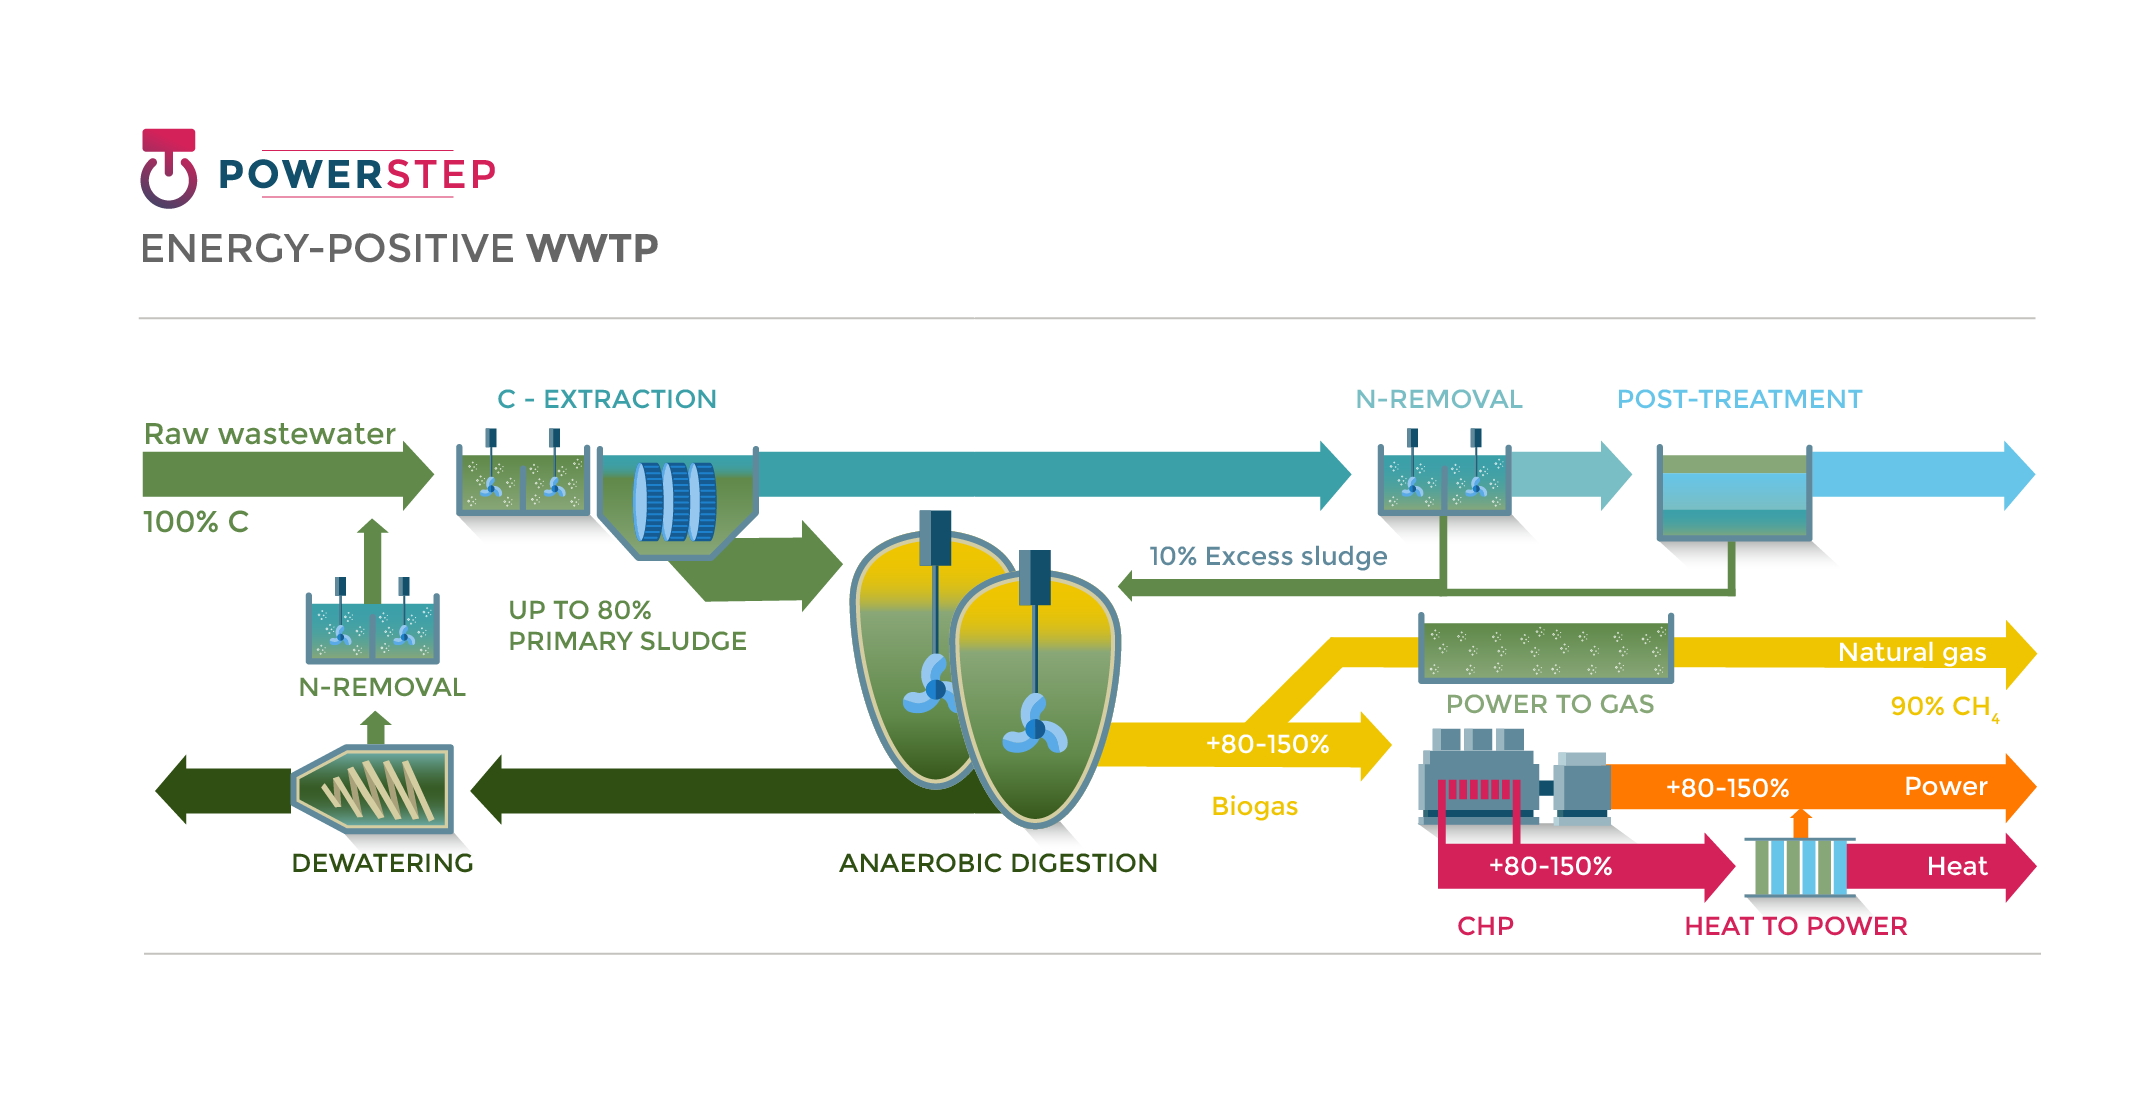 Energy-positive WWTP